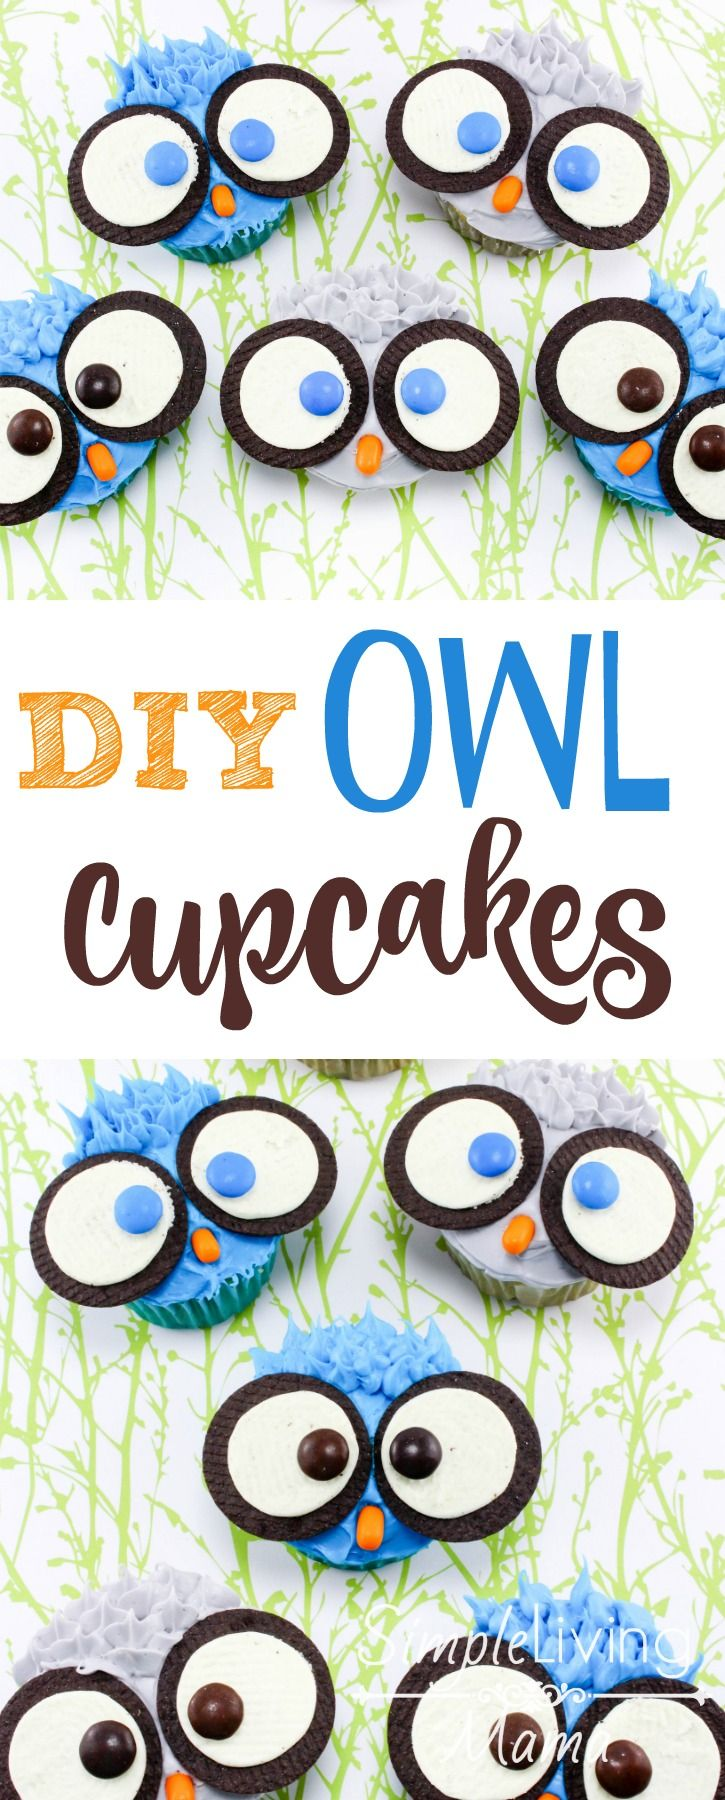 DIY Owl Cupcakes are easy to make with kids!